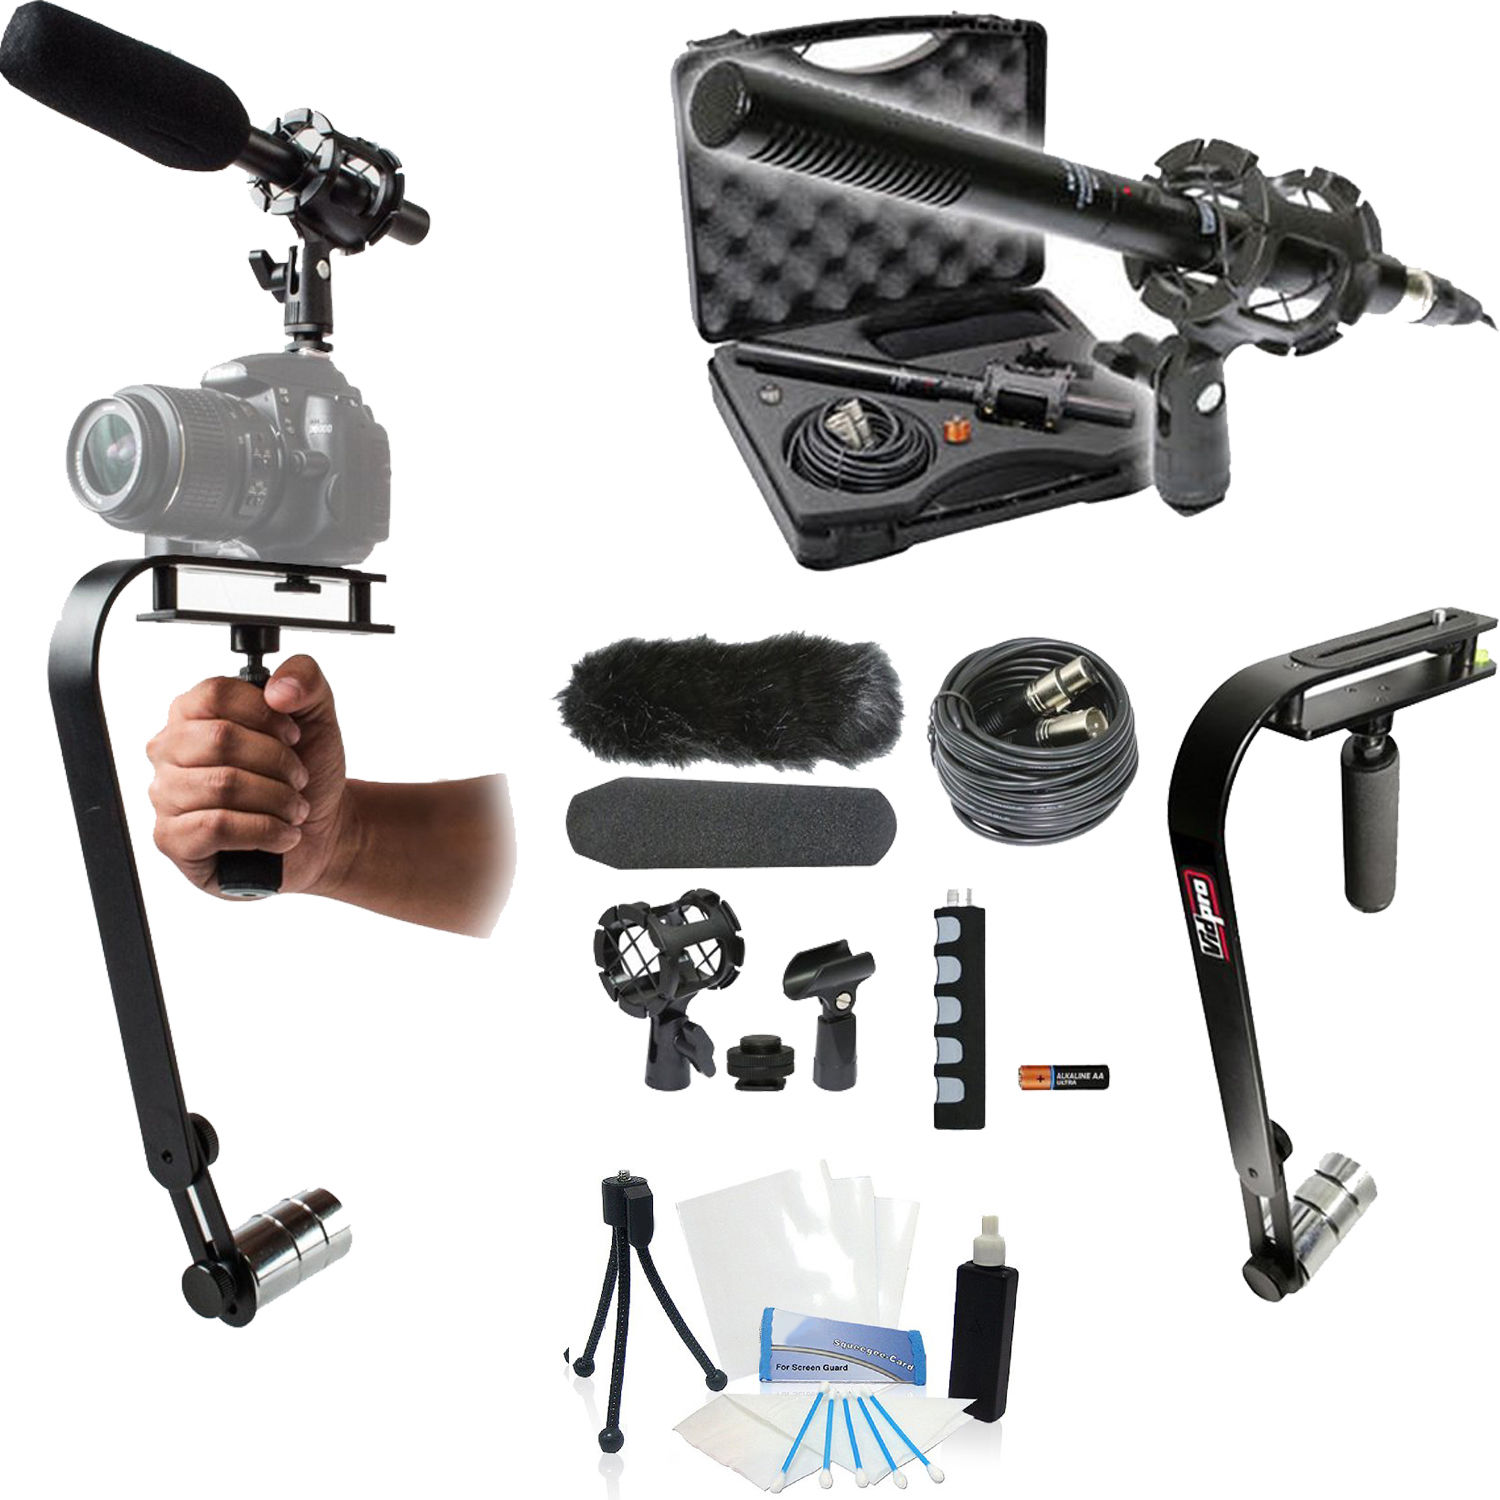 15-Piece Video Microphone Movie Bundle for Canon T6i Cameras